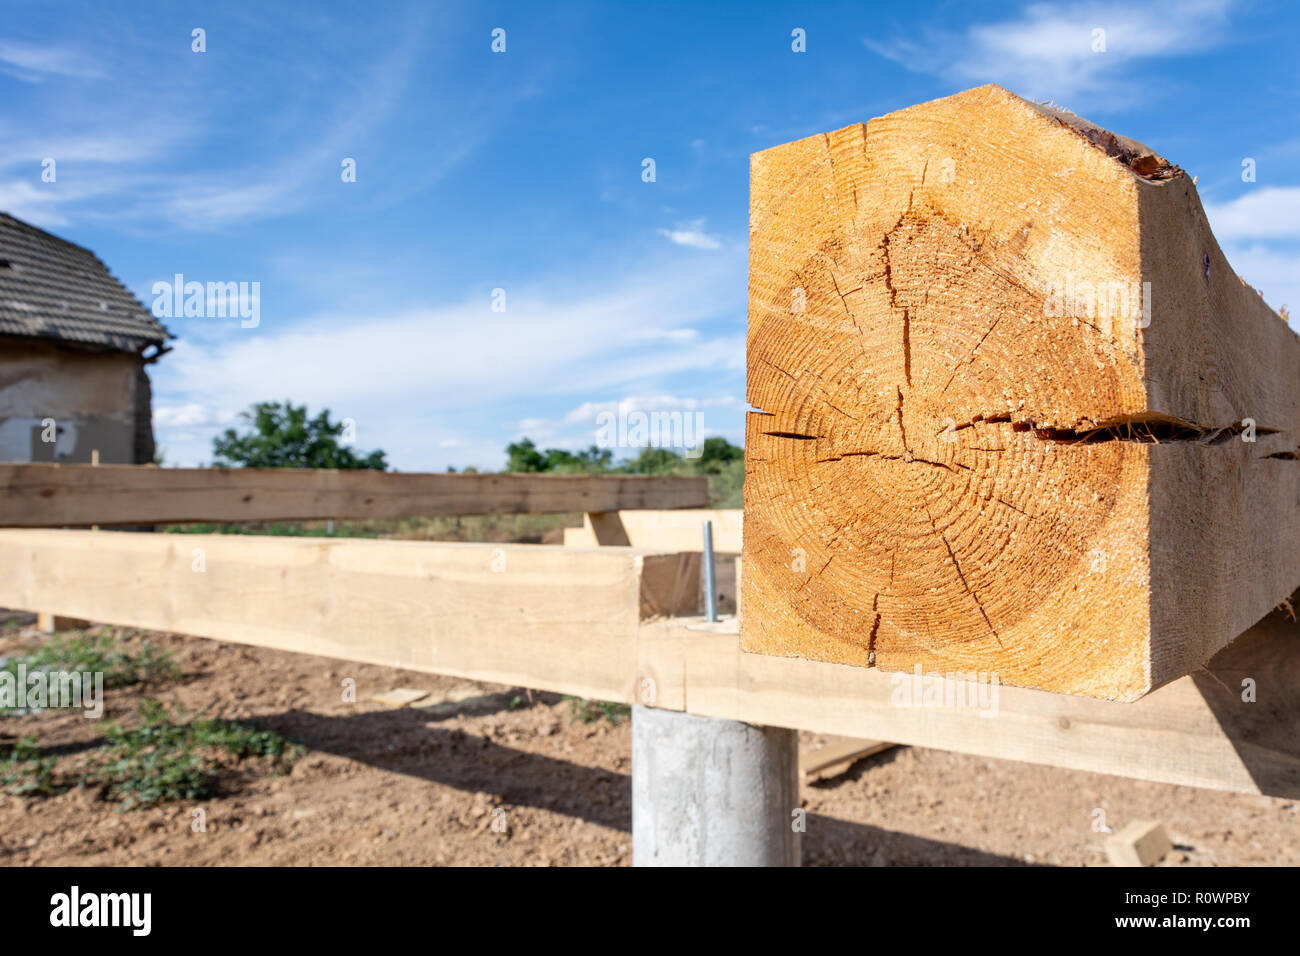 The Pine Board Impregnated With An Antiseptic On The Frame Basis Of The House Construction Of The Base Of The A Type Frame House Stock Photo Alamy